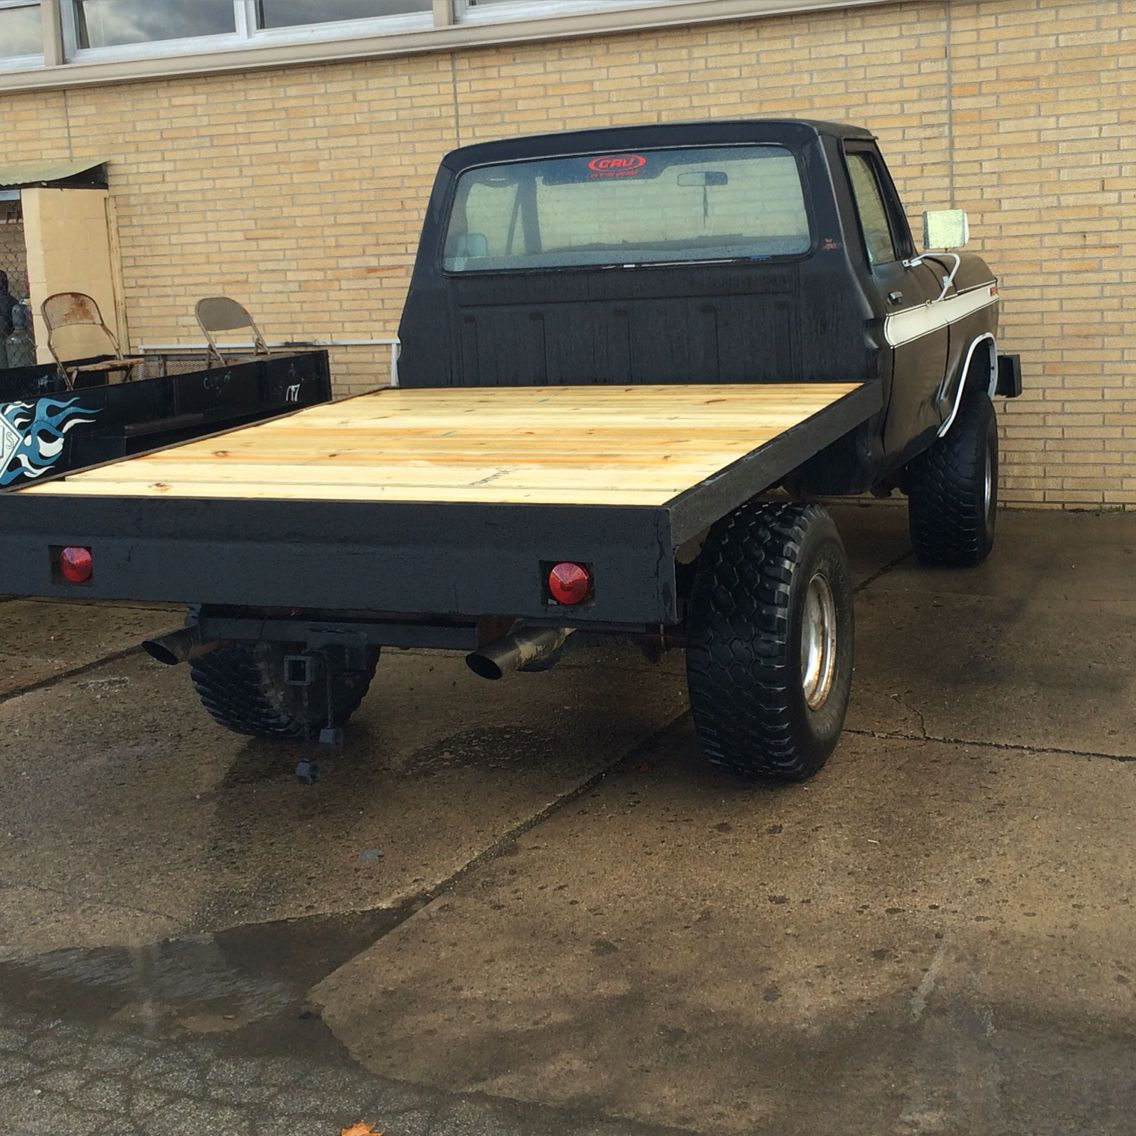 1978 ford f 150 ranger that a welded and made a flatbed to put on